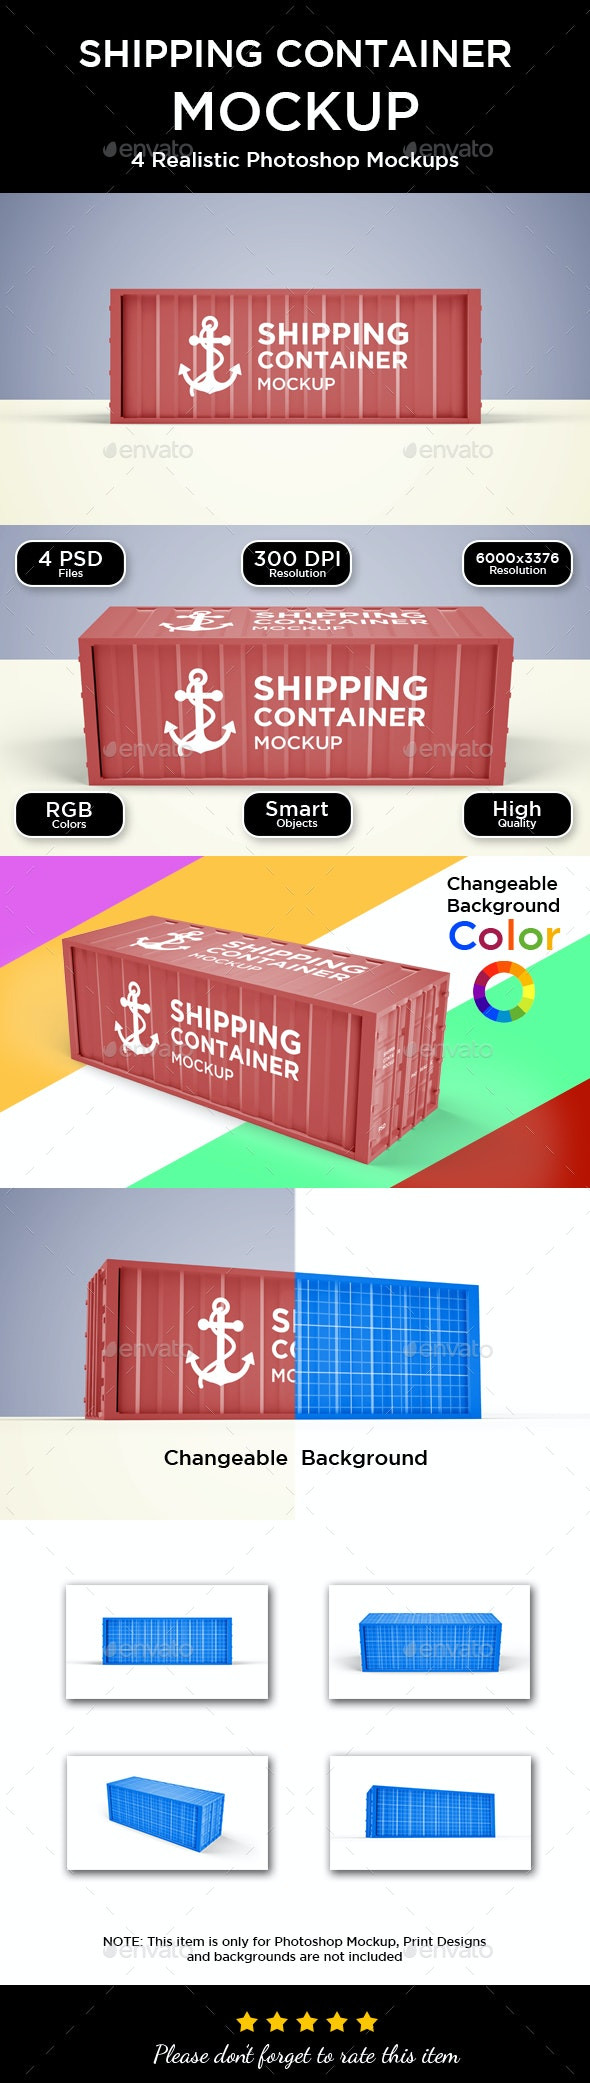 Shipping Container Mockup - Product Mock-Ups Graphics